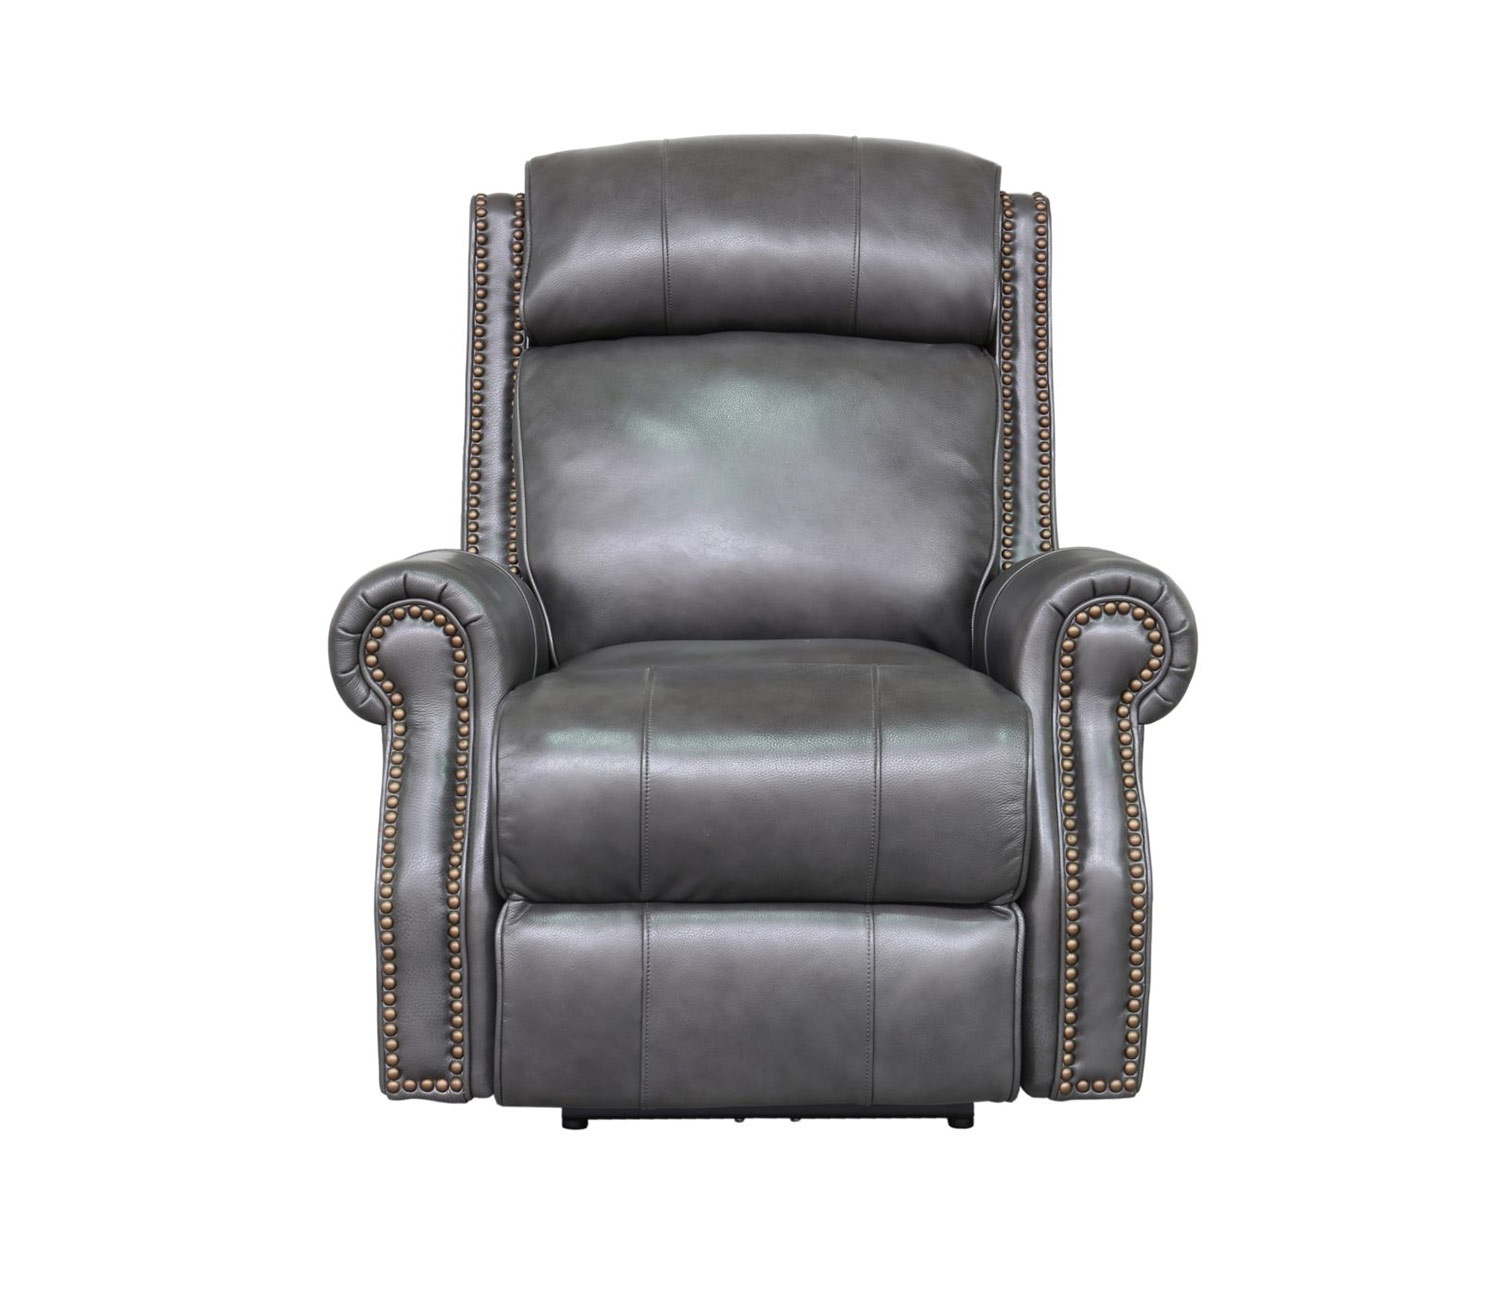 Barcalounger Blair Big and Tall Power Recliner Chair with Power Head Rest - Wrenn Gray/all leather